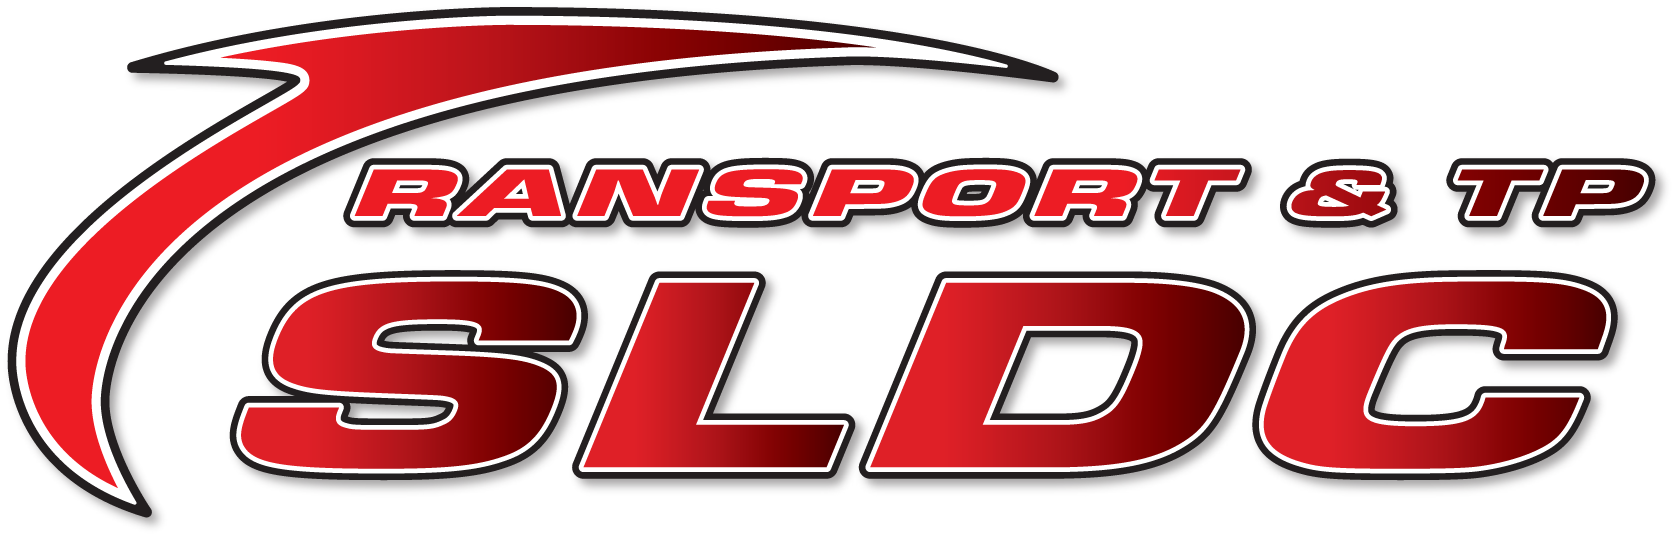 SLDC TRANSPORT ET TP